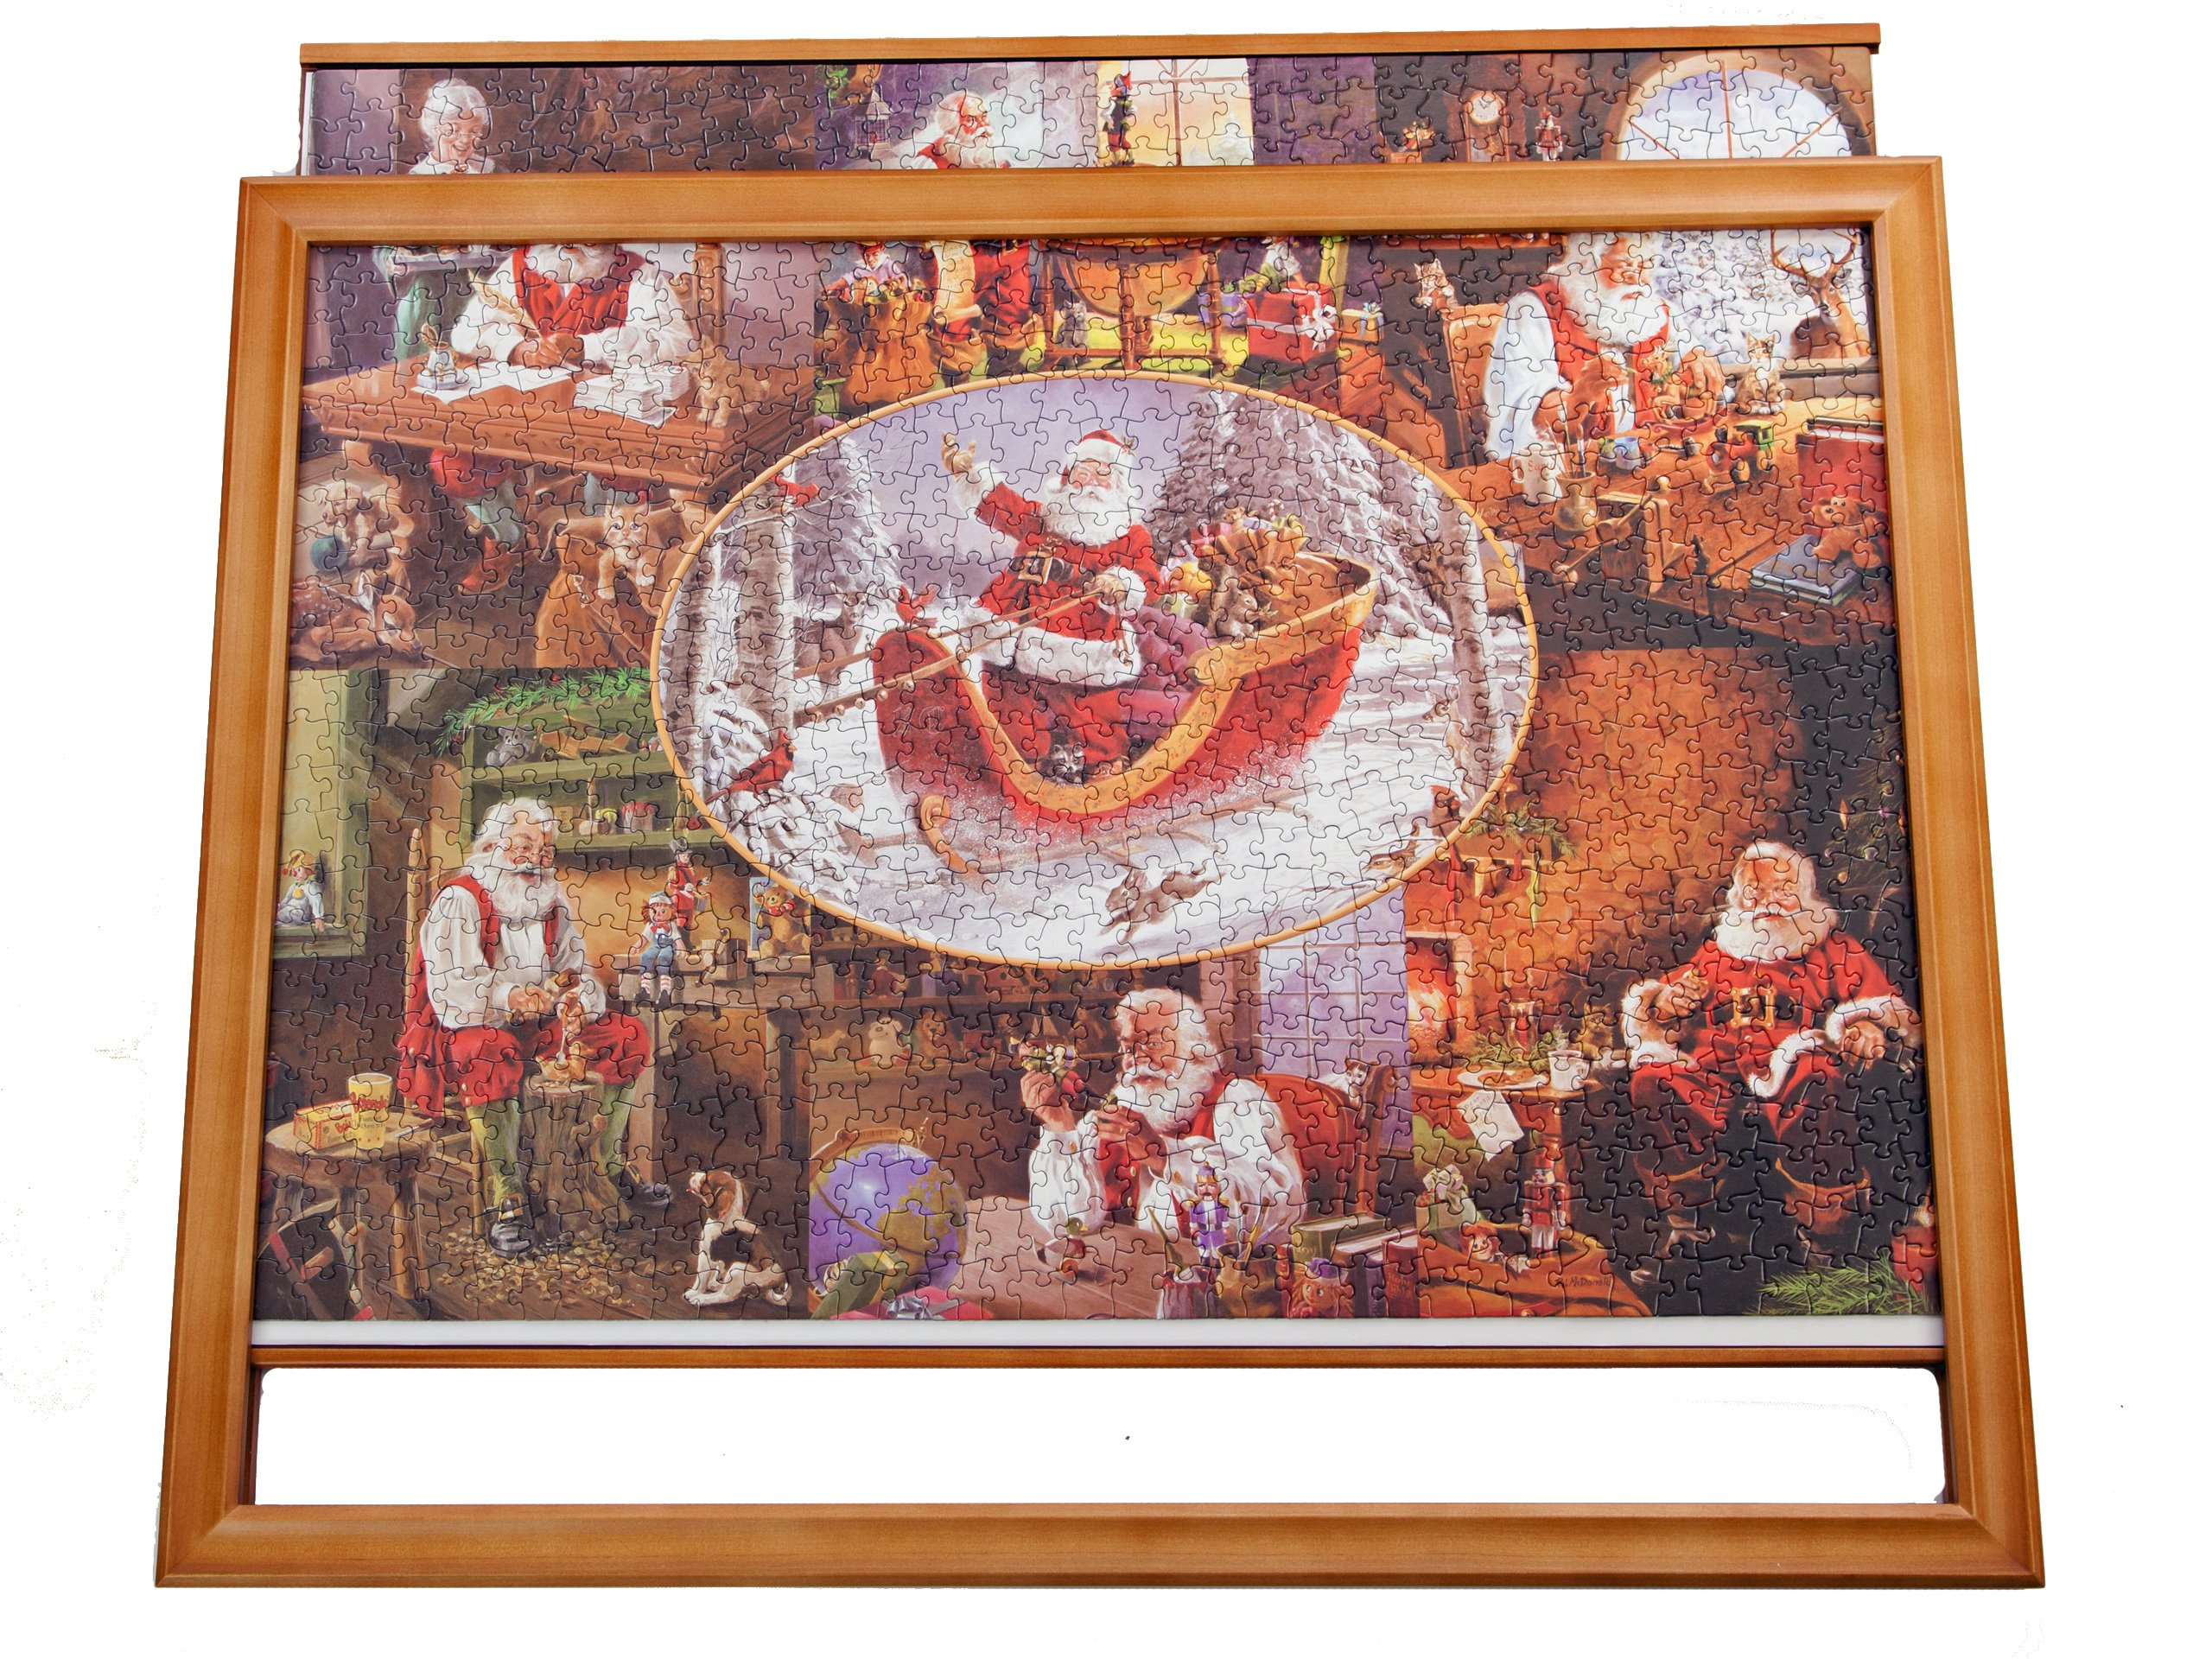 JIGFRAME LIGHT 1000 LARGE - Jigsaw puzzle frame to 30.1 inches x 24.7 inches